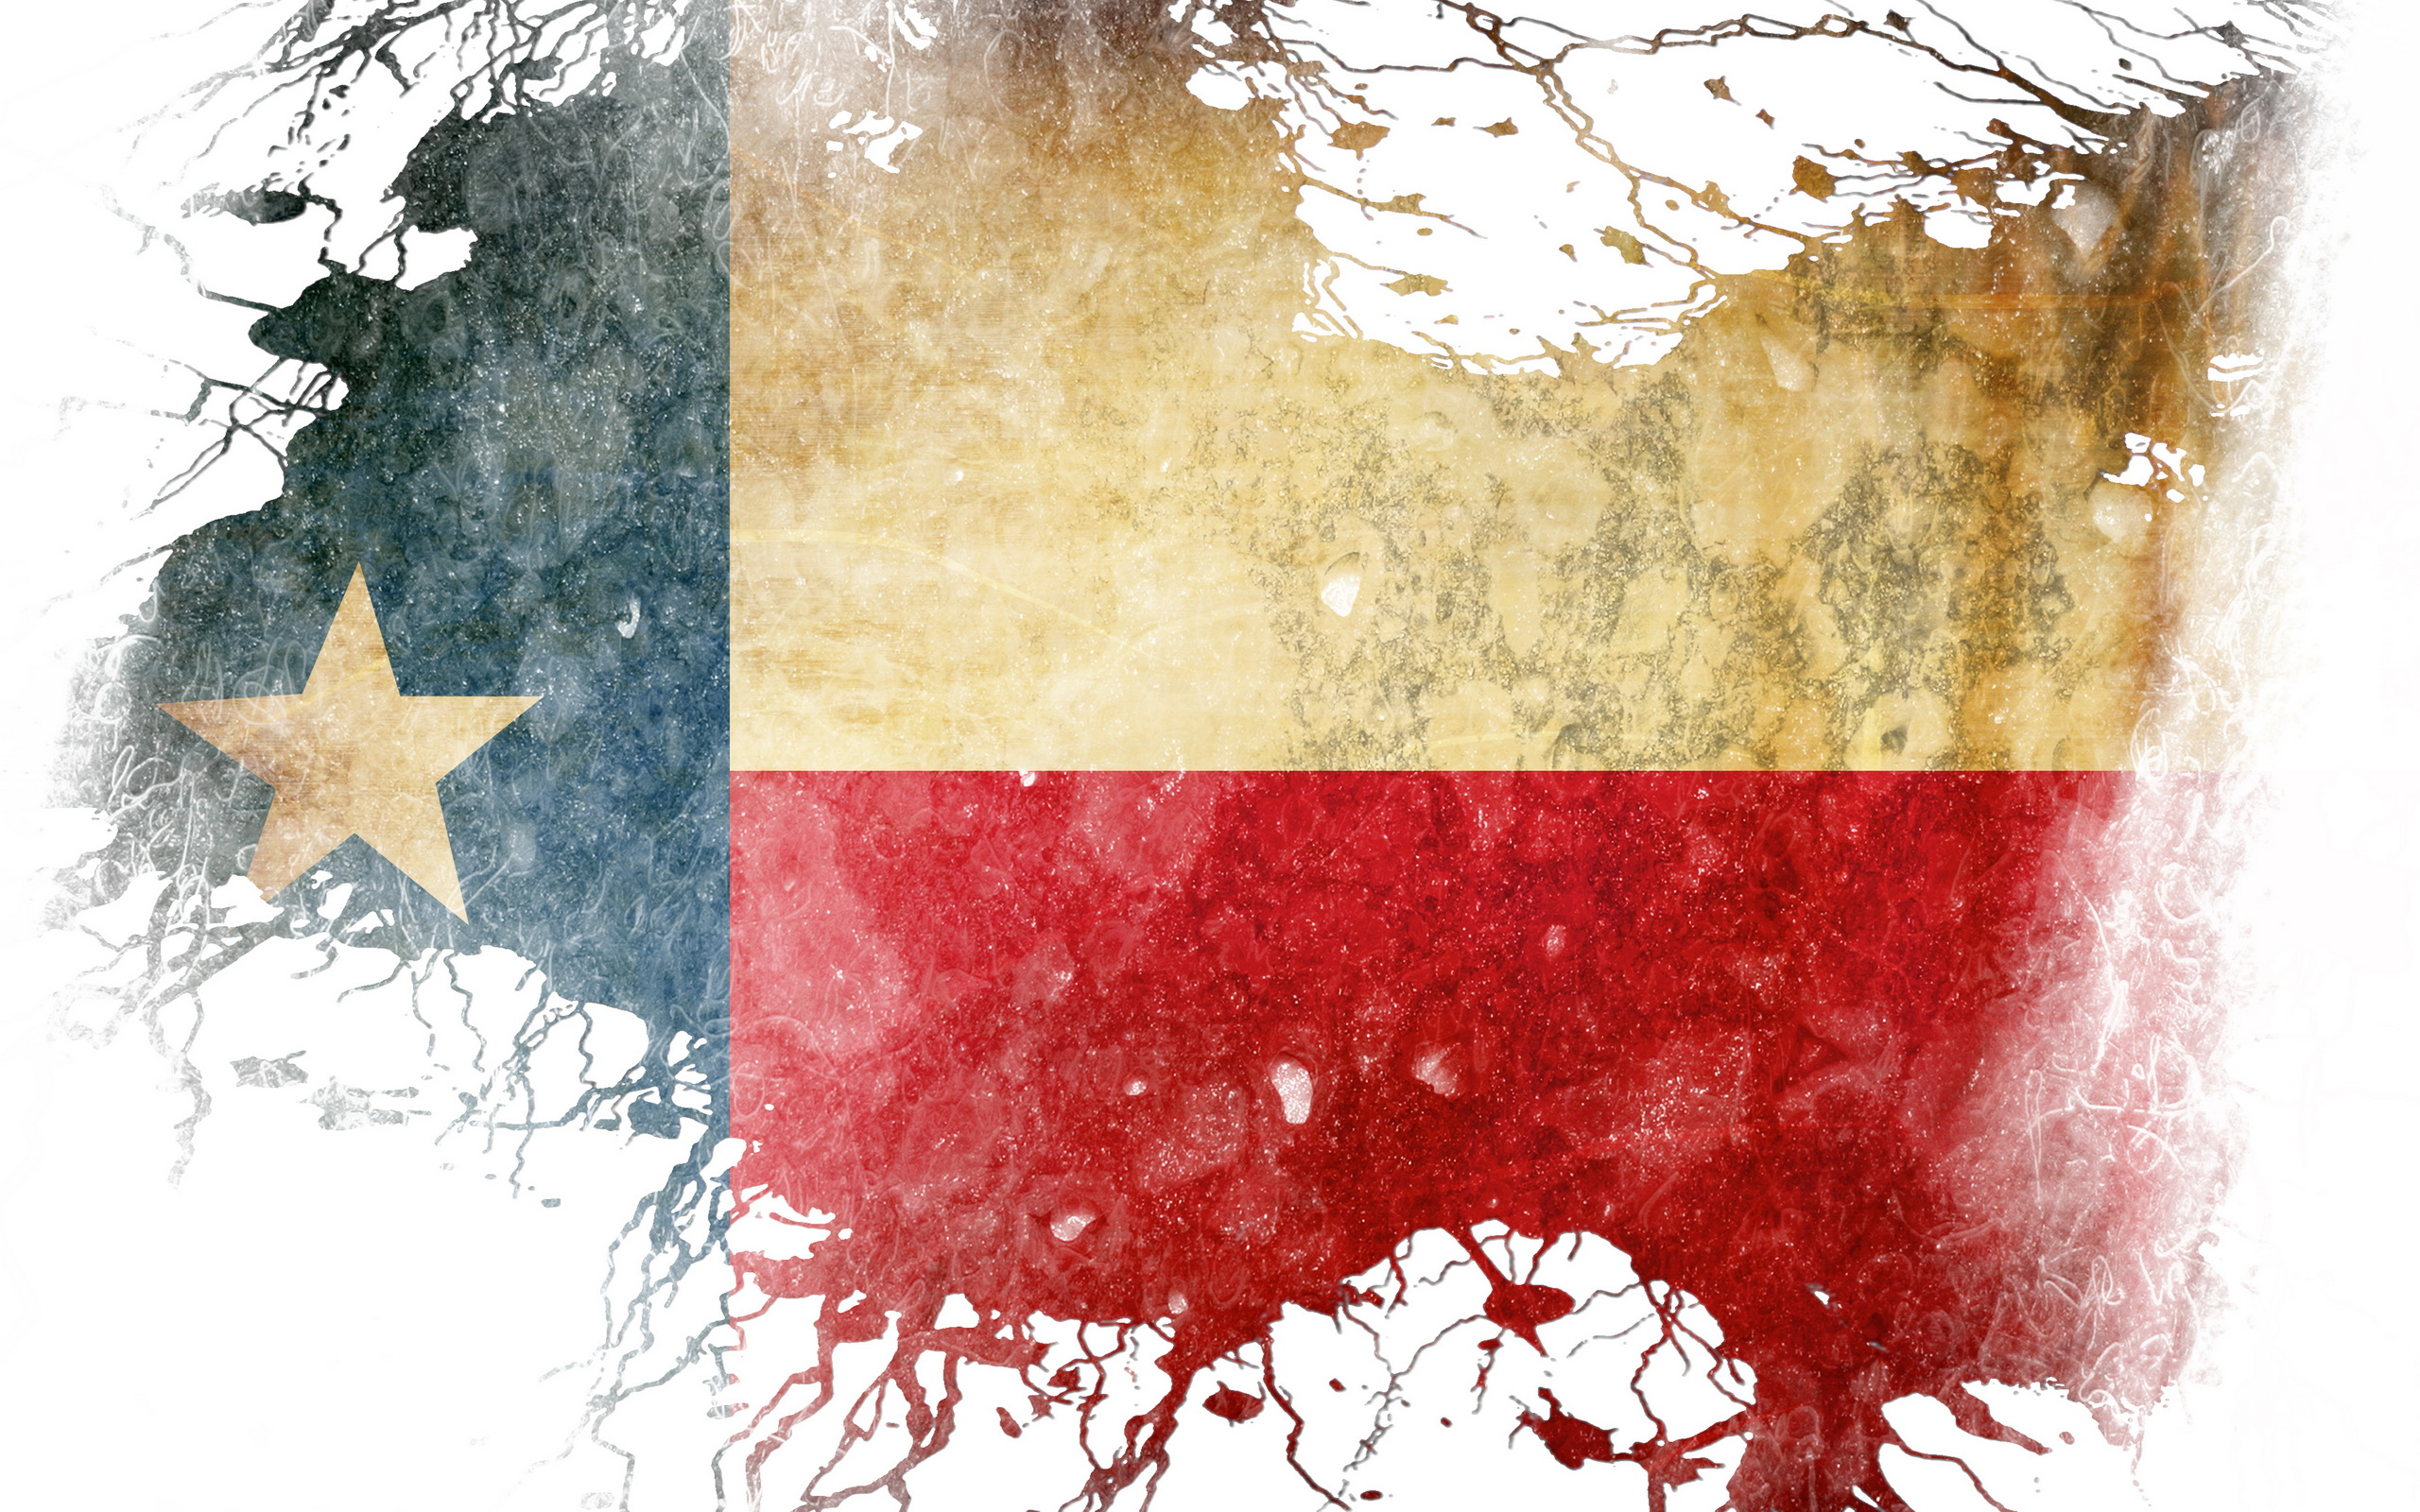 Puerto Rico Flag Wallpaper Hd 1 Flag Of Texas Hd Wallpapers Background Images